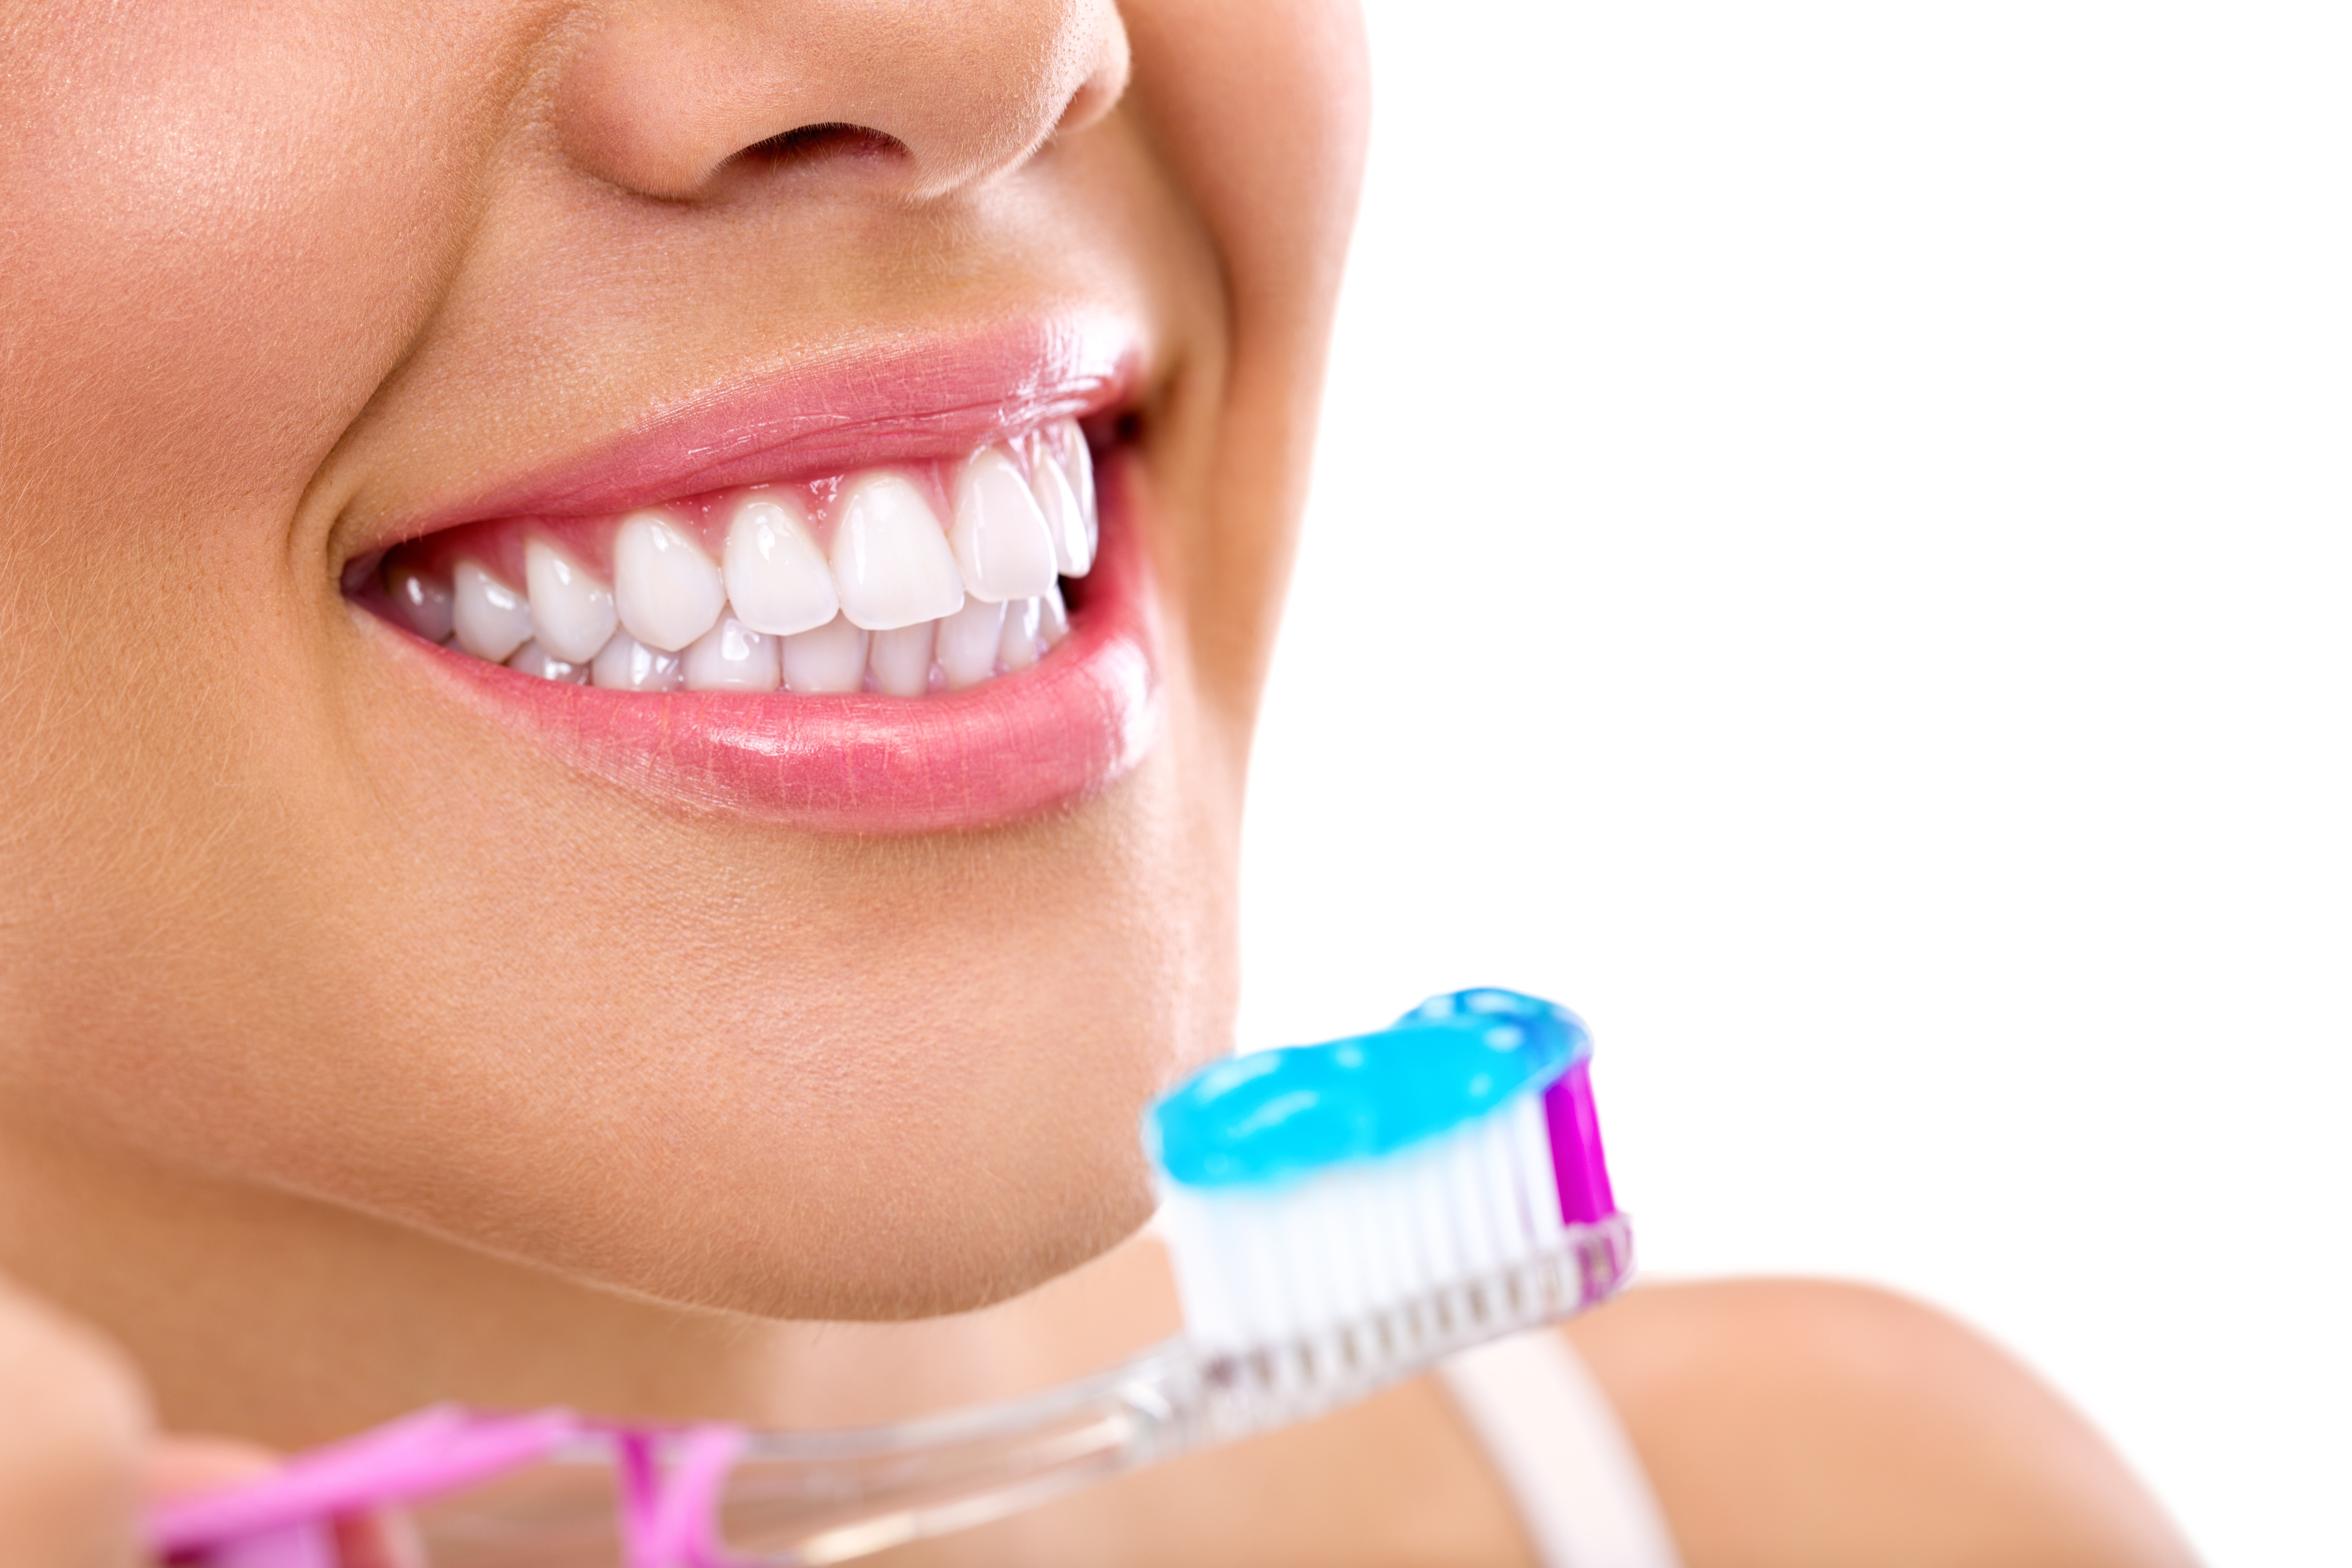 Advice From a Buckhead Dentist: The Best Way to Brush Your Teeth